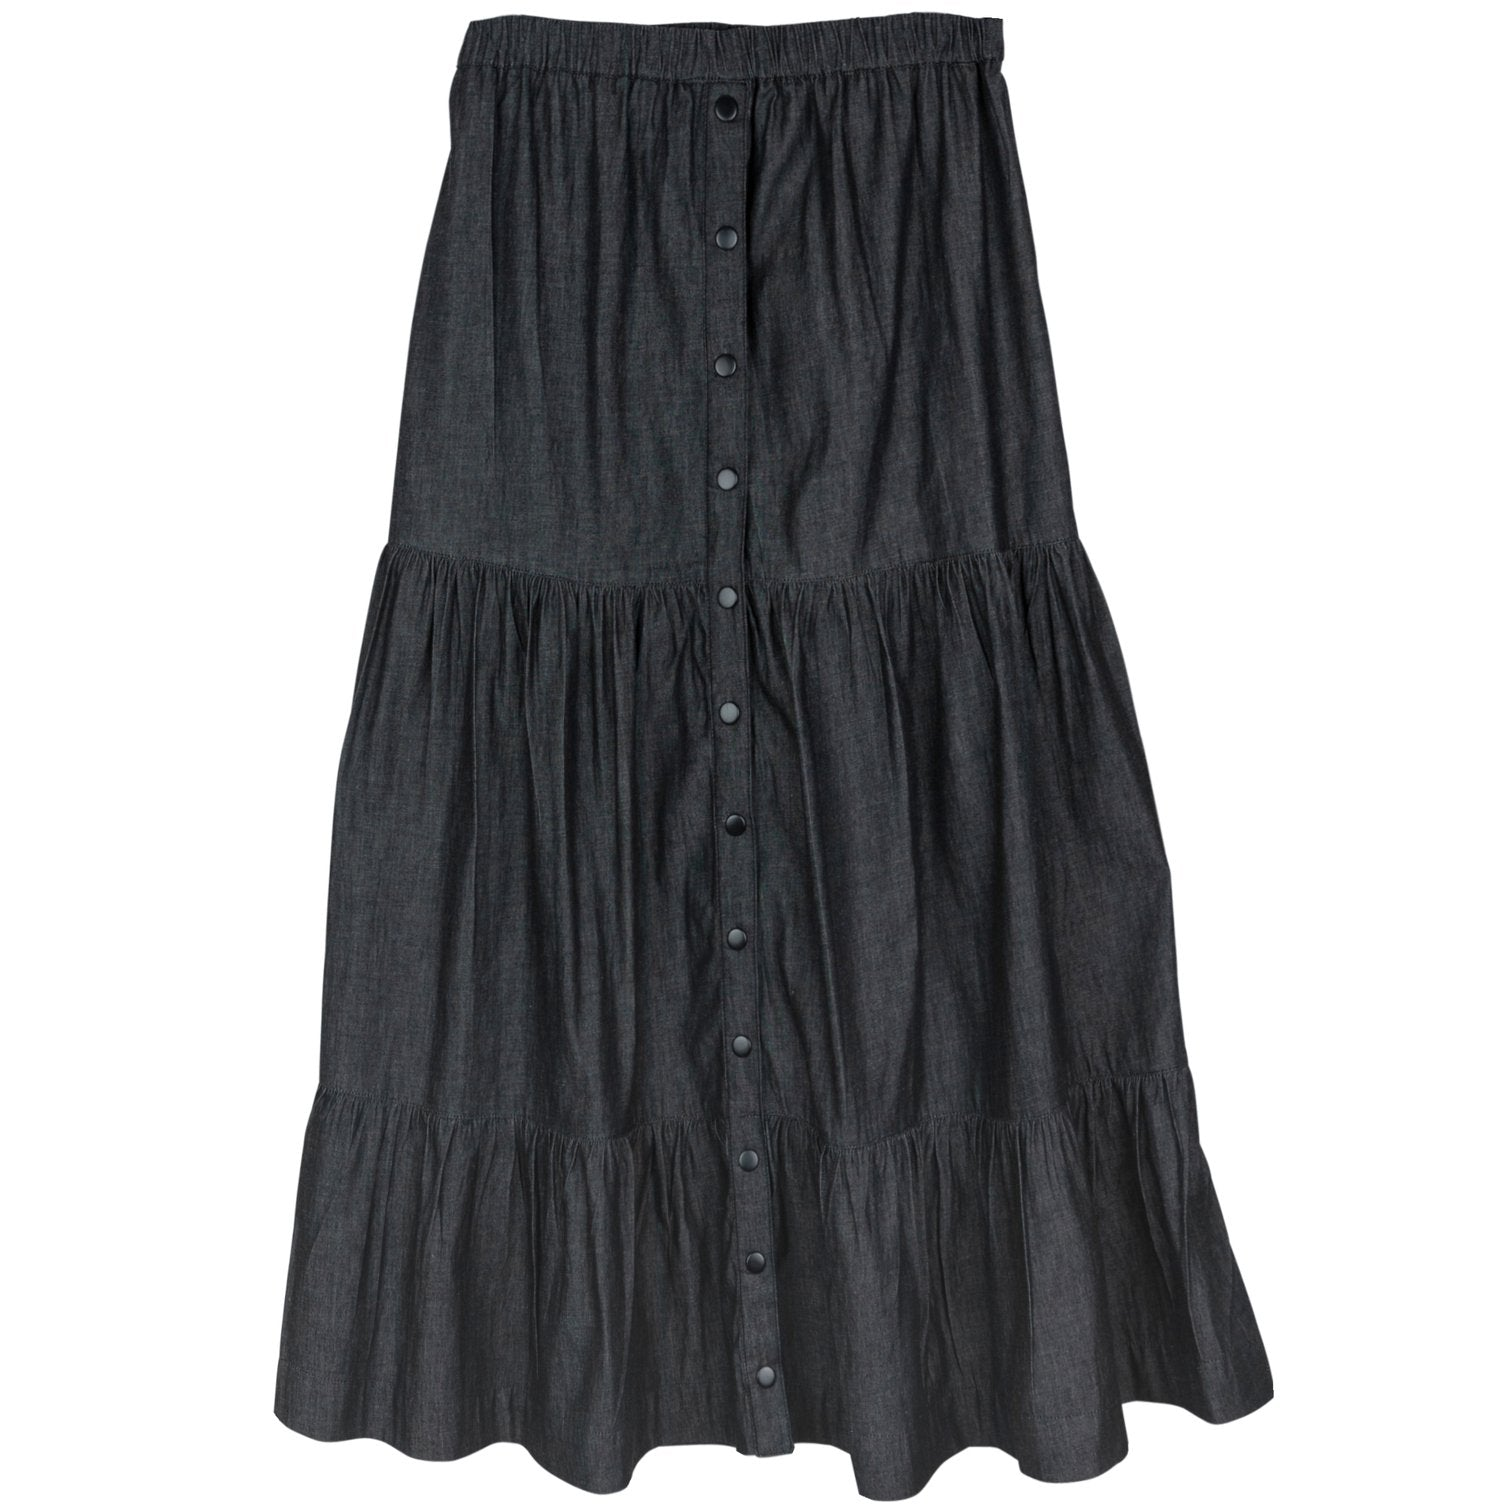 Froo Black Dina Skirt